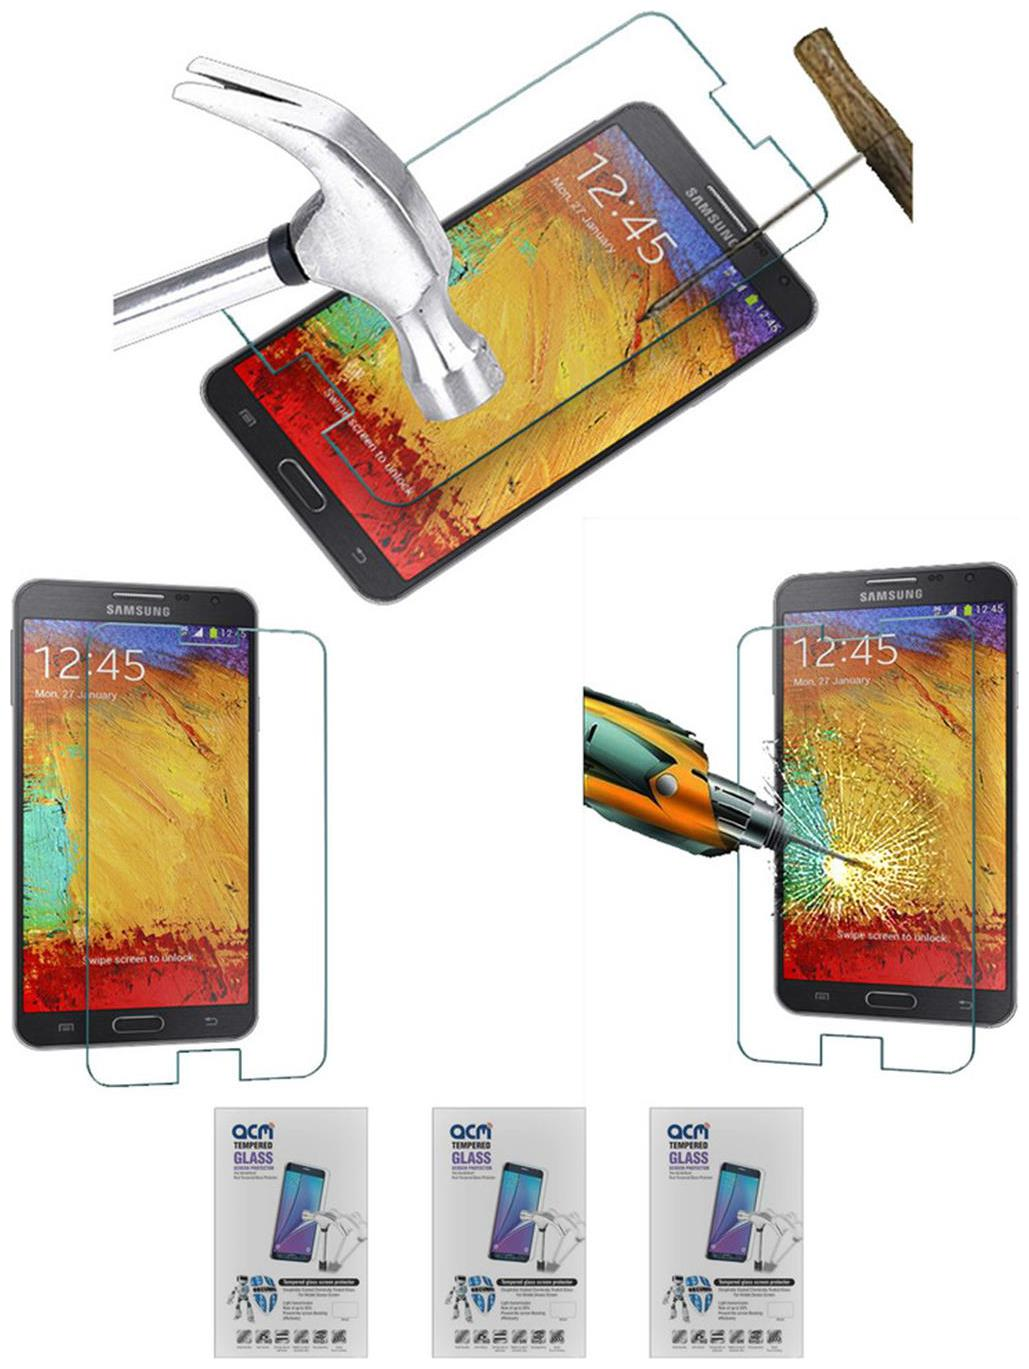 Acm Pack Of 3 Tempered Glass Screenguard For Samsung Galaxy Note 3 N9000 Mobile Screen Guard Scratch Protector